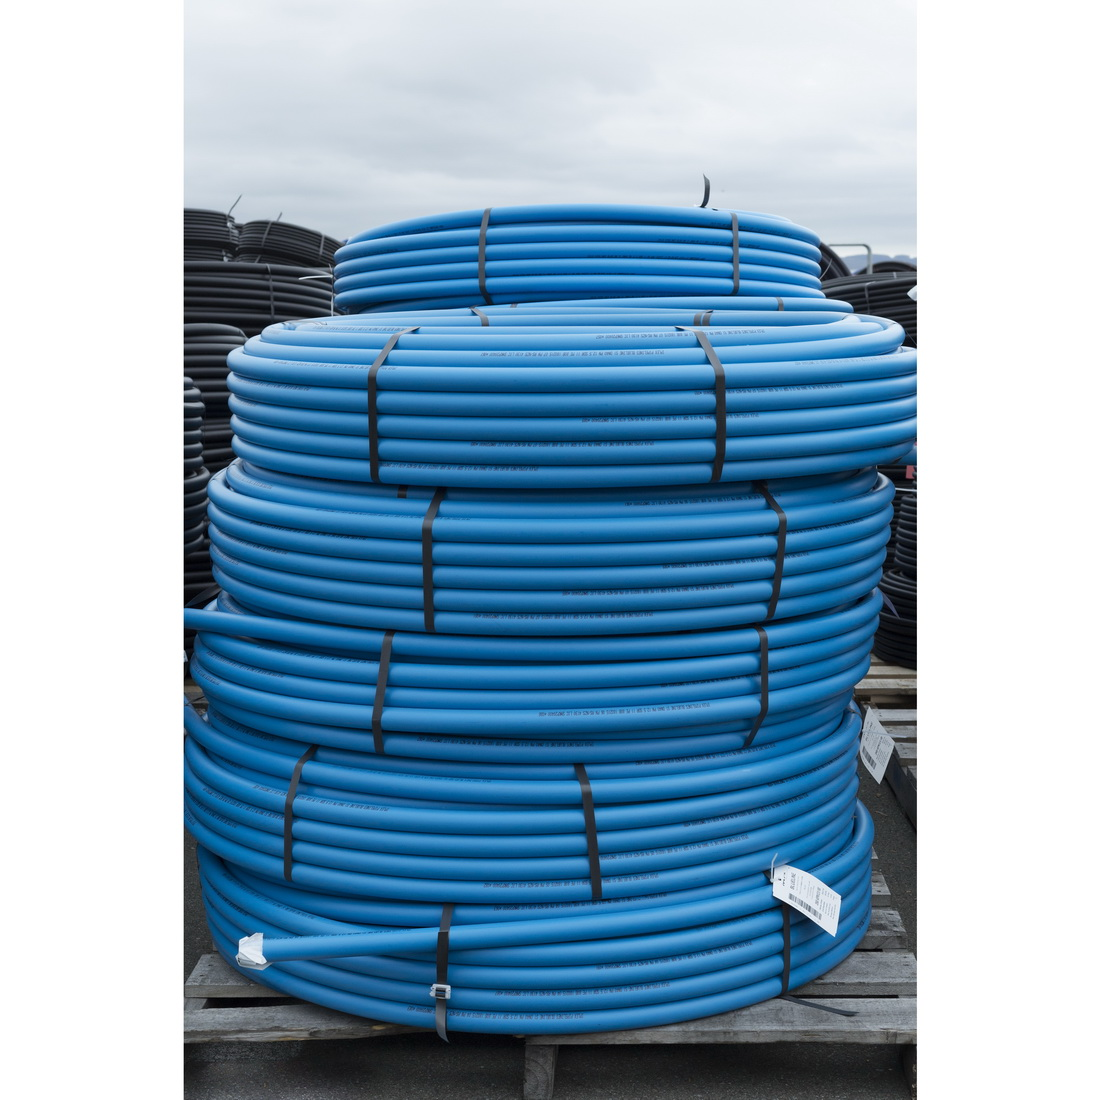 PolBlueline 2500 Series Pressure Pipe 25mm x 100m 12.5 bar Compression PE80 MDPE Light Blue